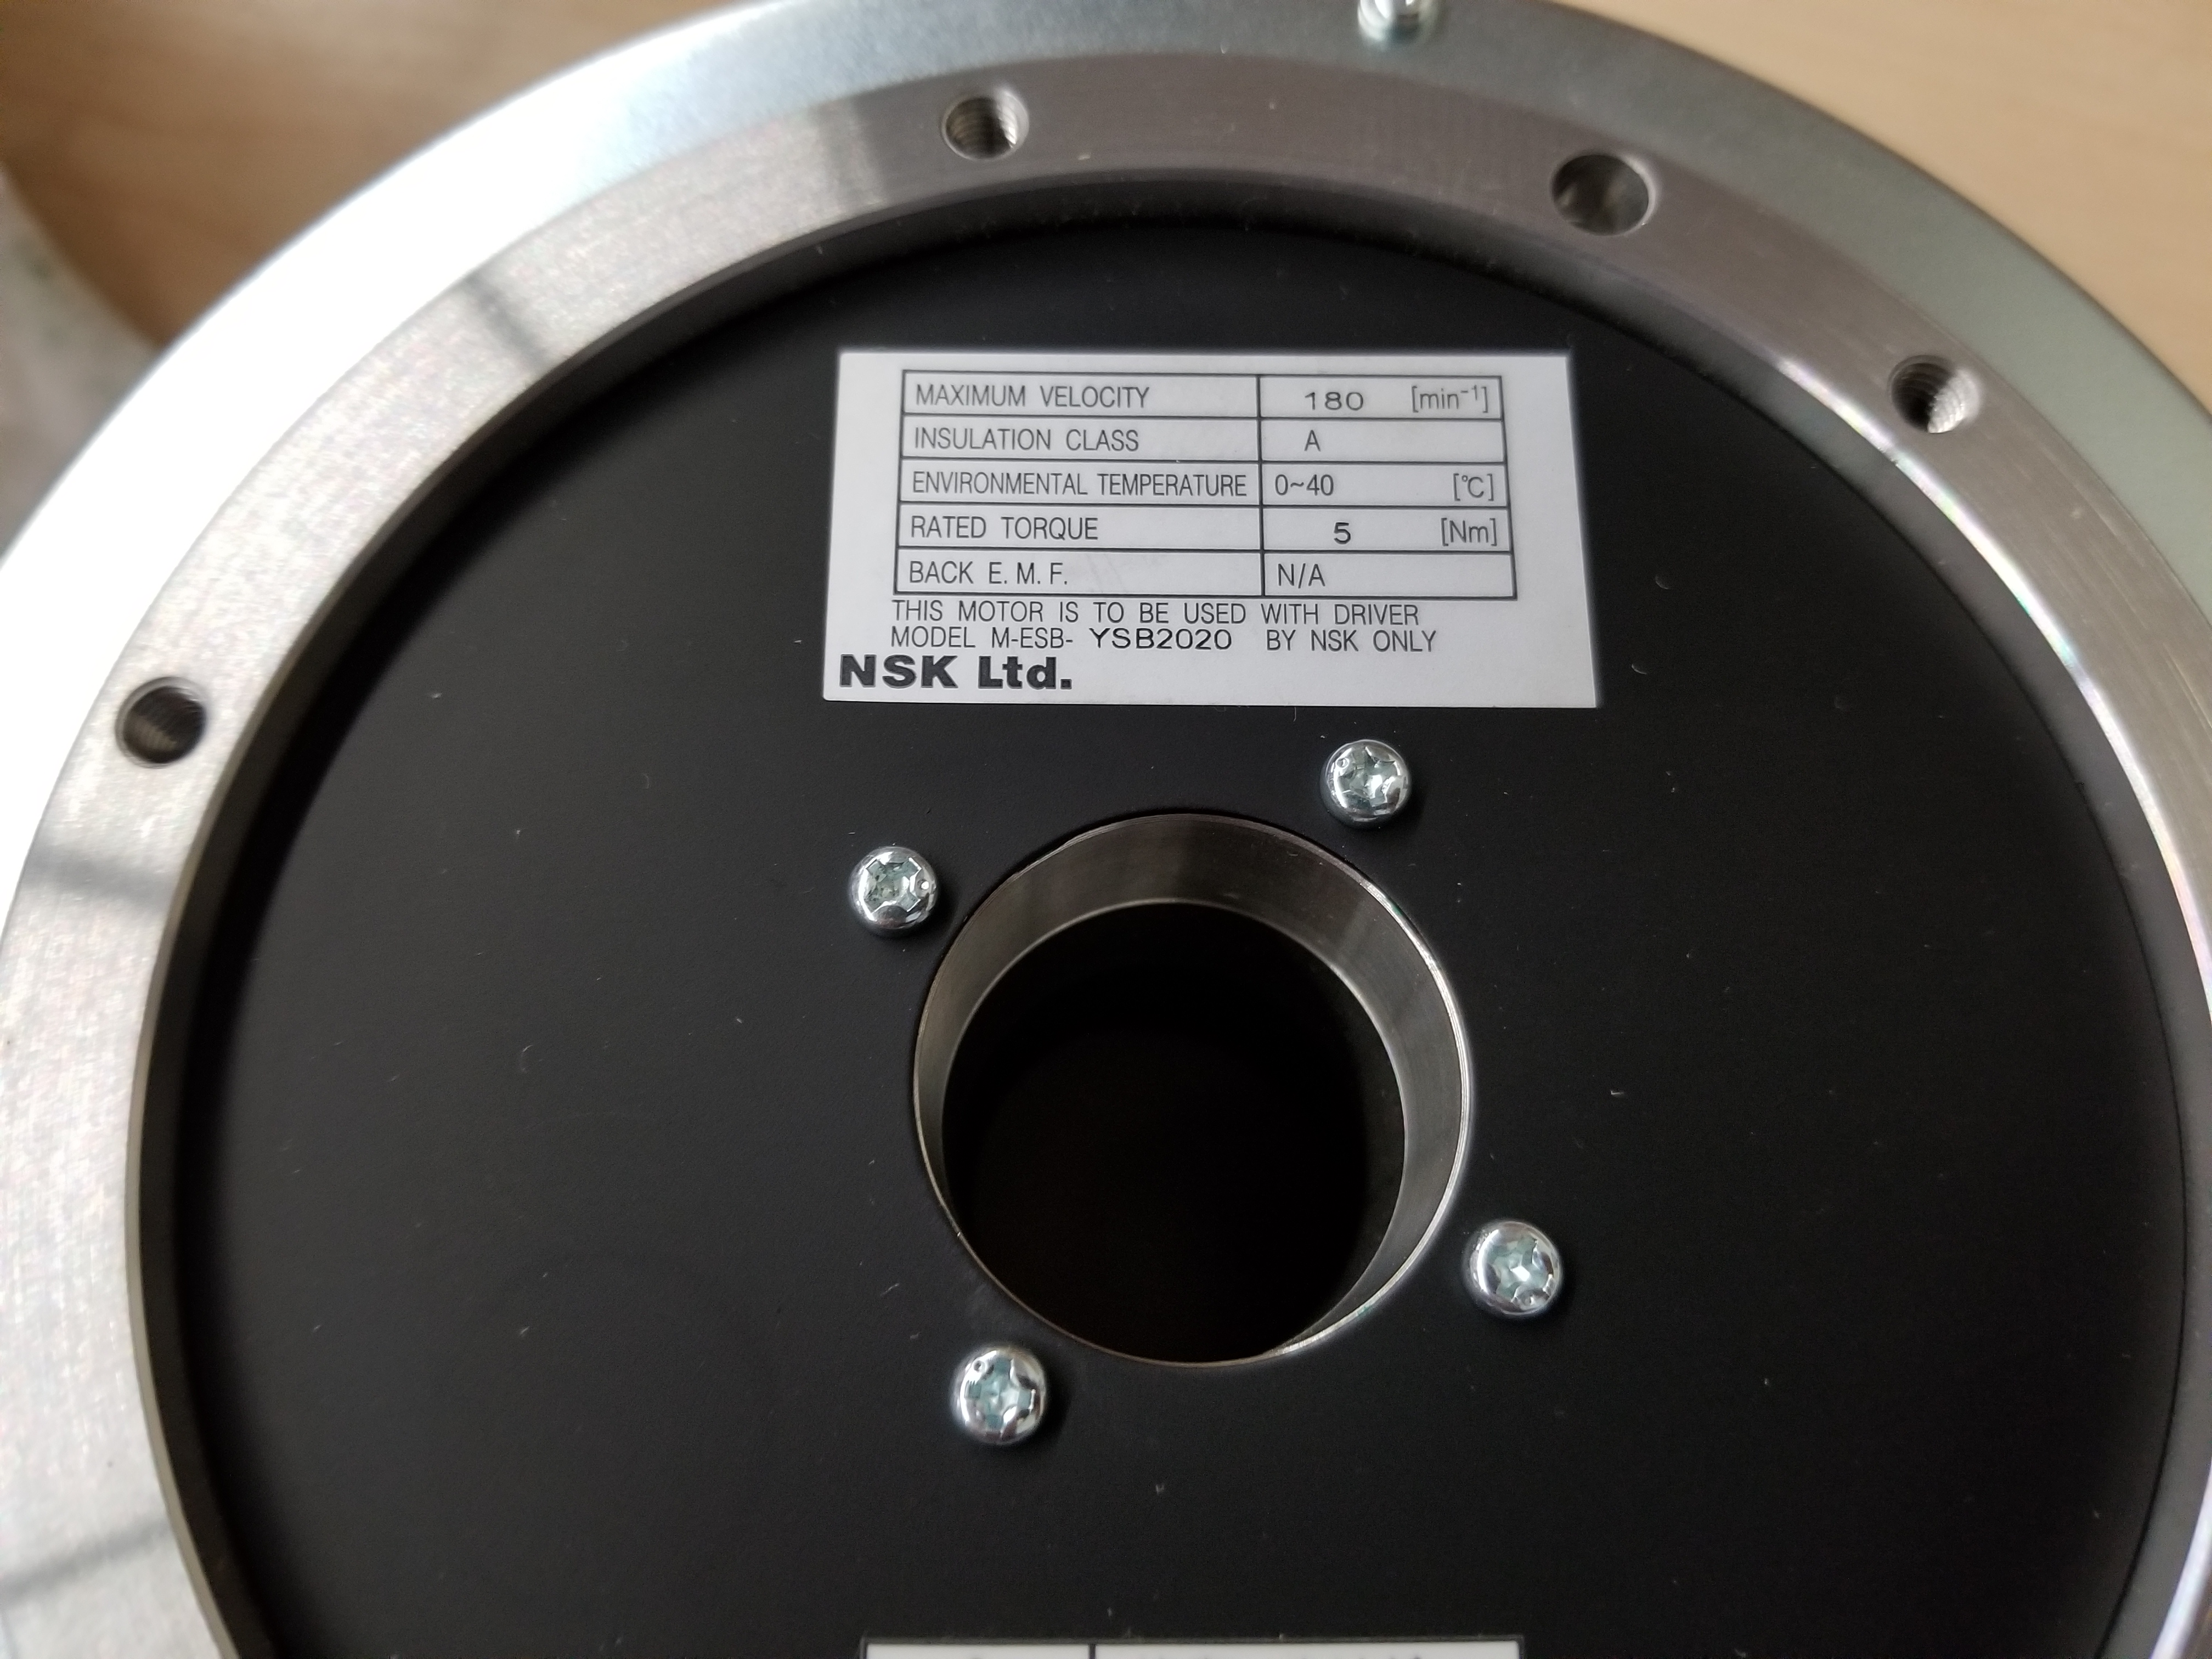 New NSK Megatorque Motor With Used ESB Drive And Pendant - Image 12 of 19